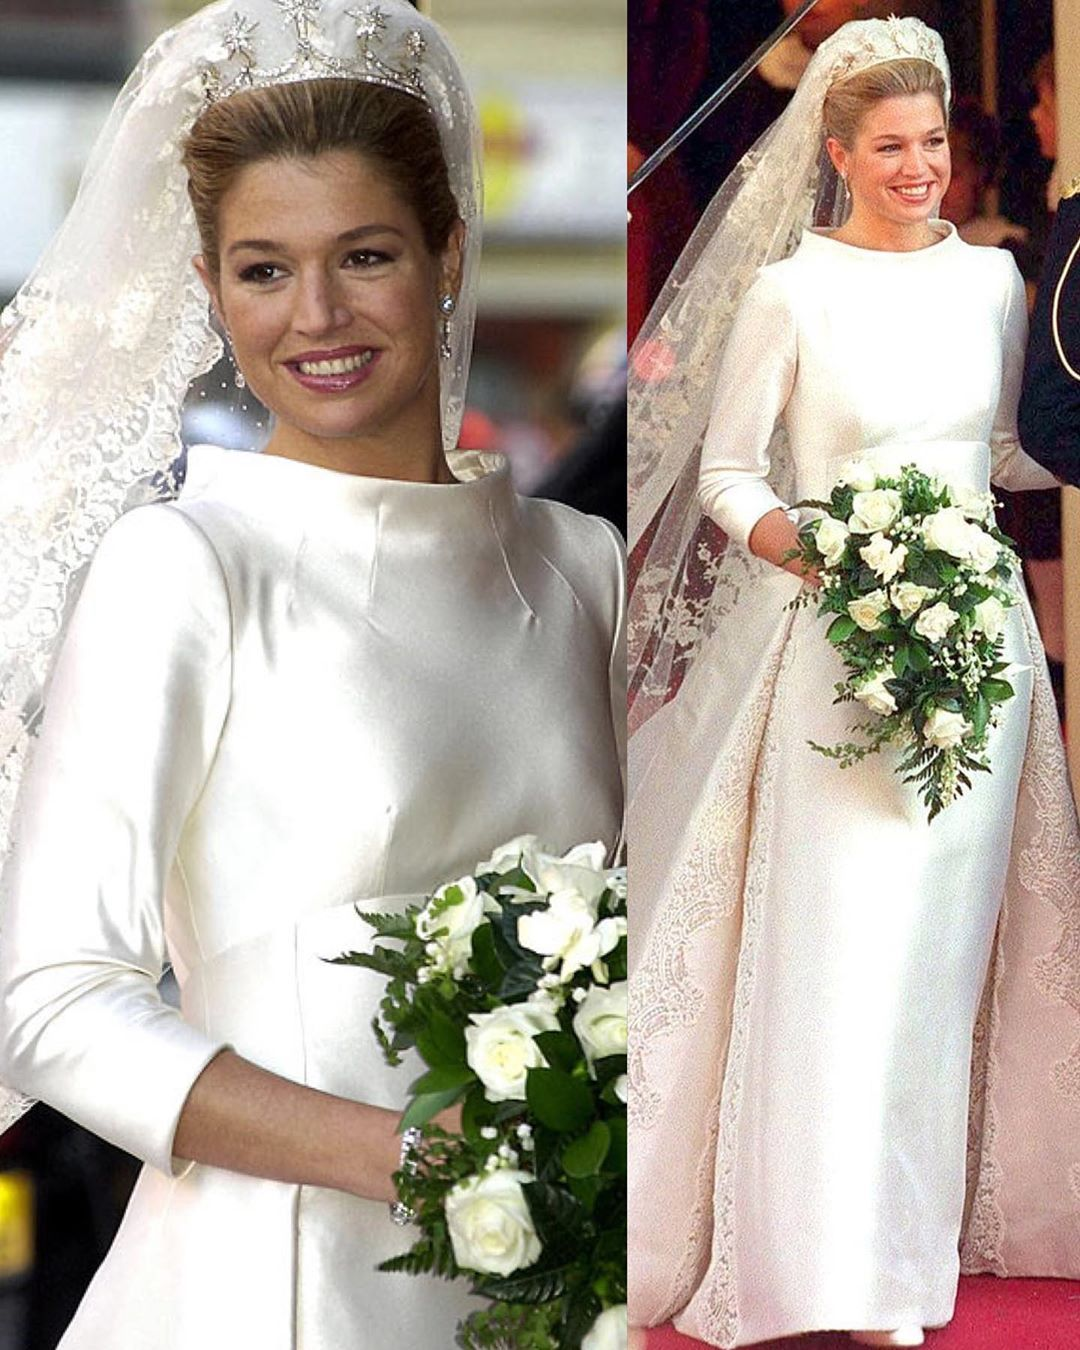 Royal Families Of Europe On Instagram Do You Like Her Wedding Gown Queen Maxima During Her Queen Wedding Dress Wedding Dresses Royal Wedding Dress [ 1350 x 1080 Pixel ]